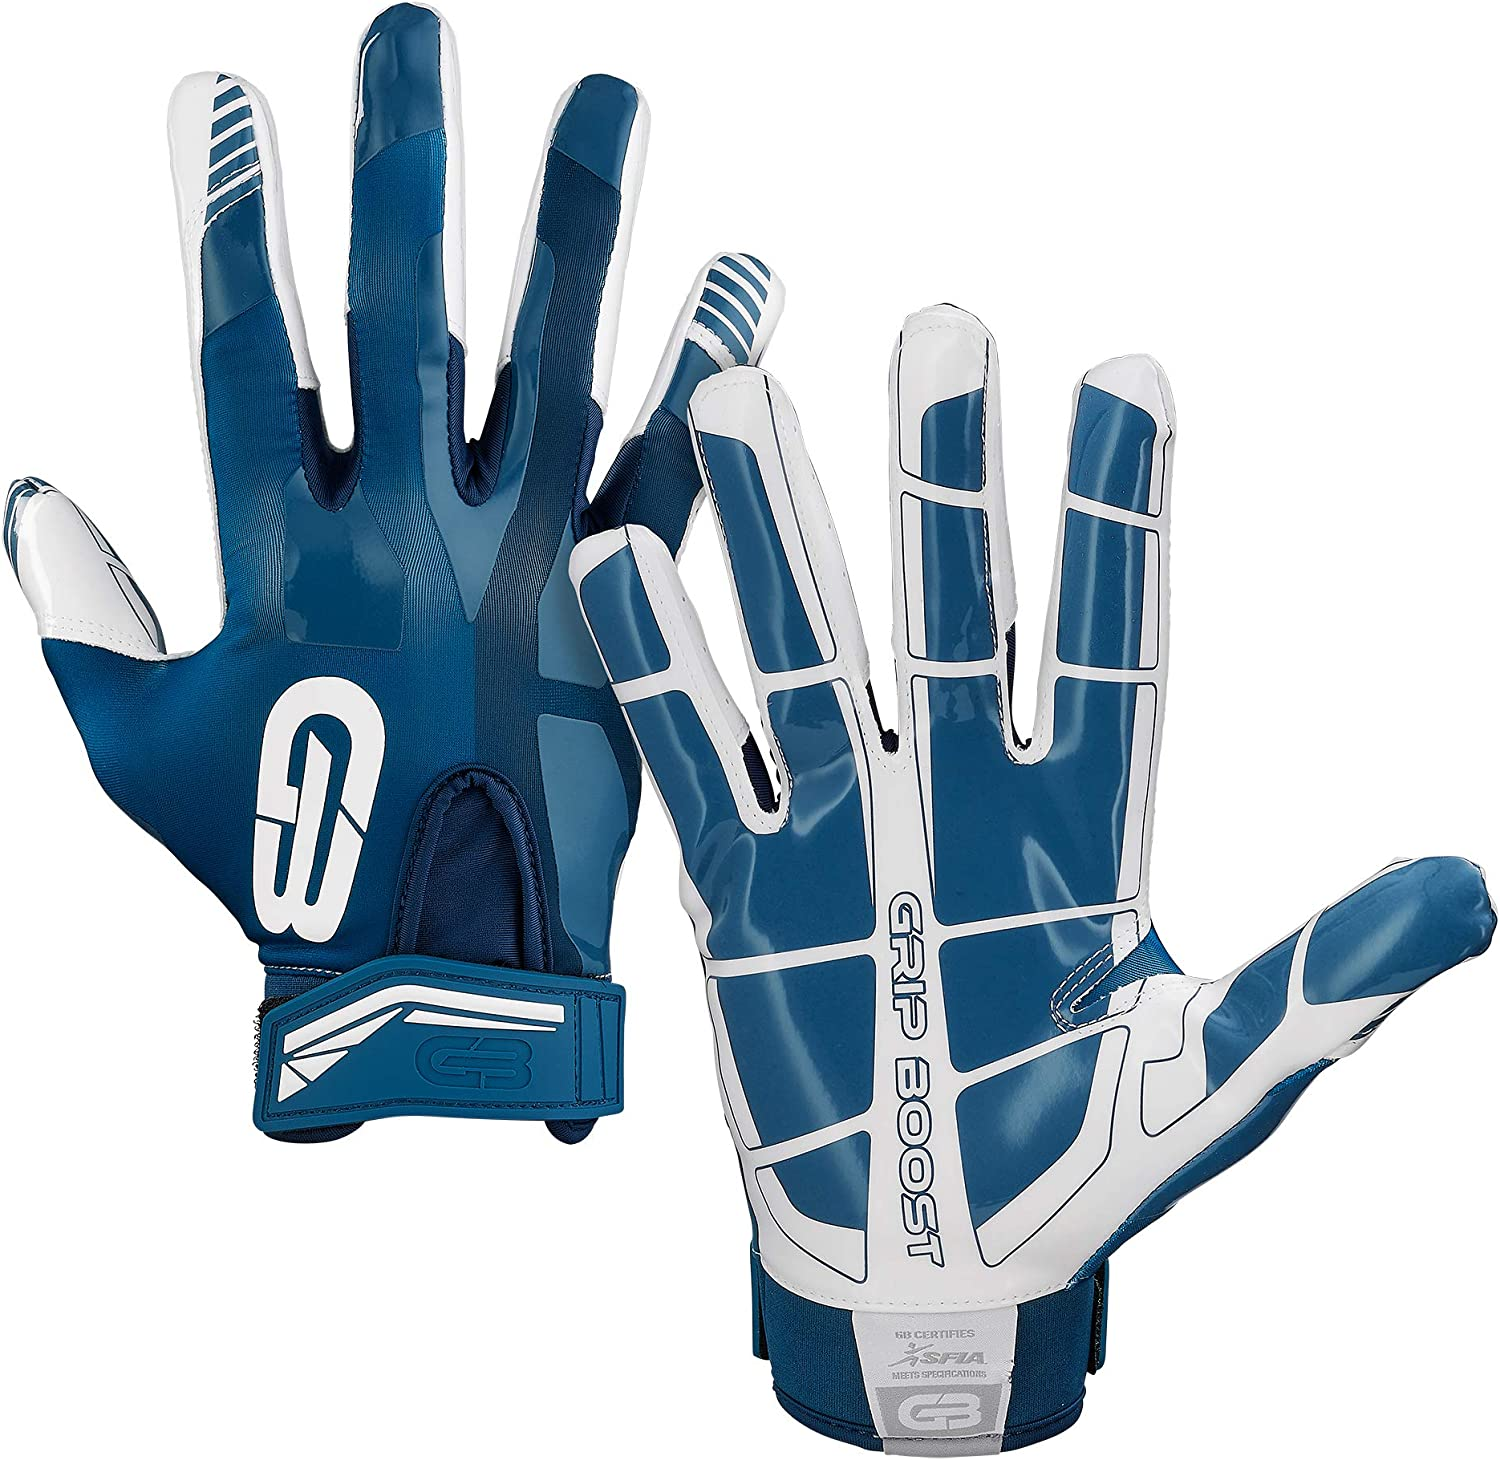 Adult /& Youth Football Glove Sizes Grip Boost Football Gloves Mens #1 Grip Stealth Pro Elite